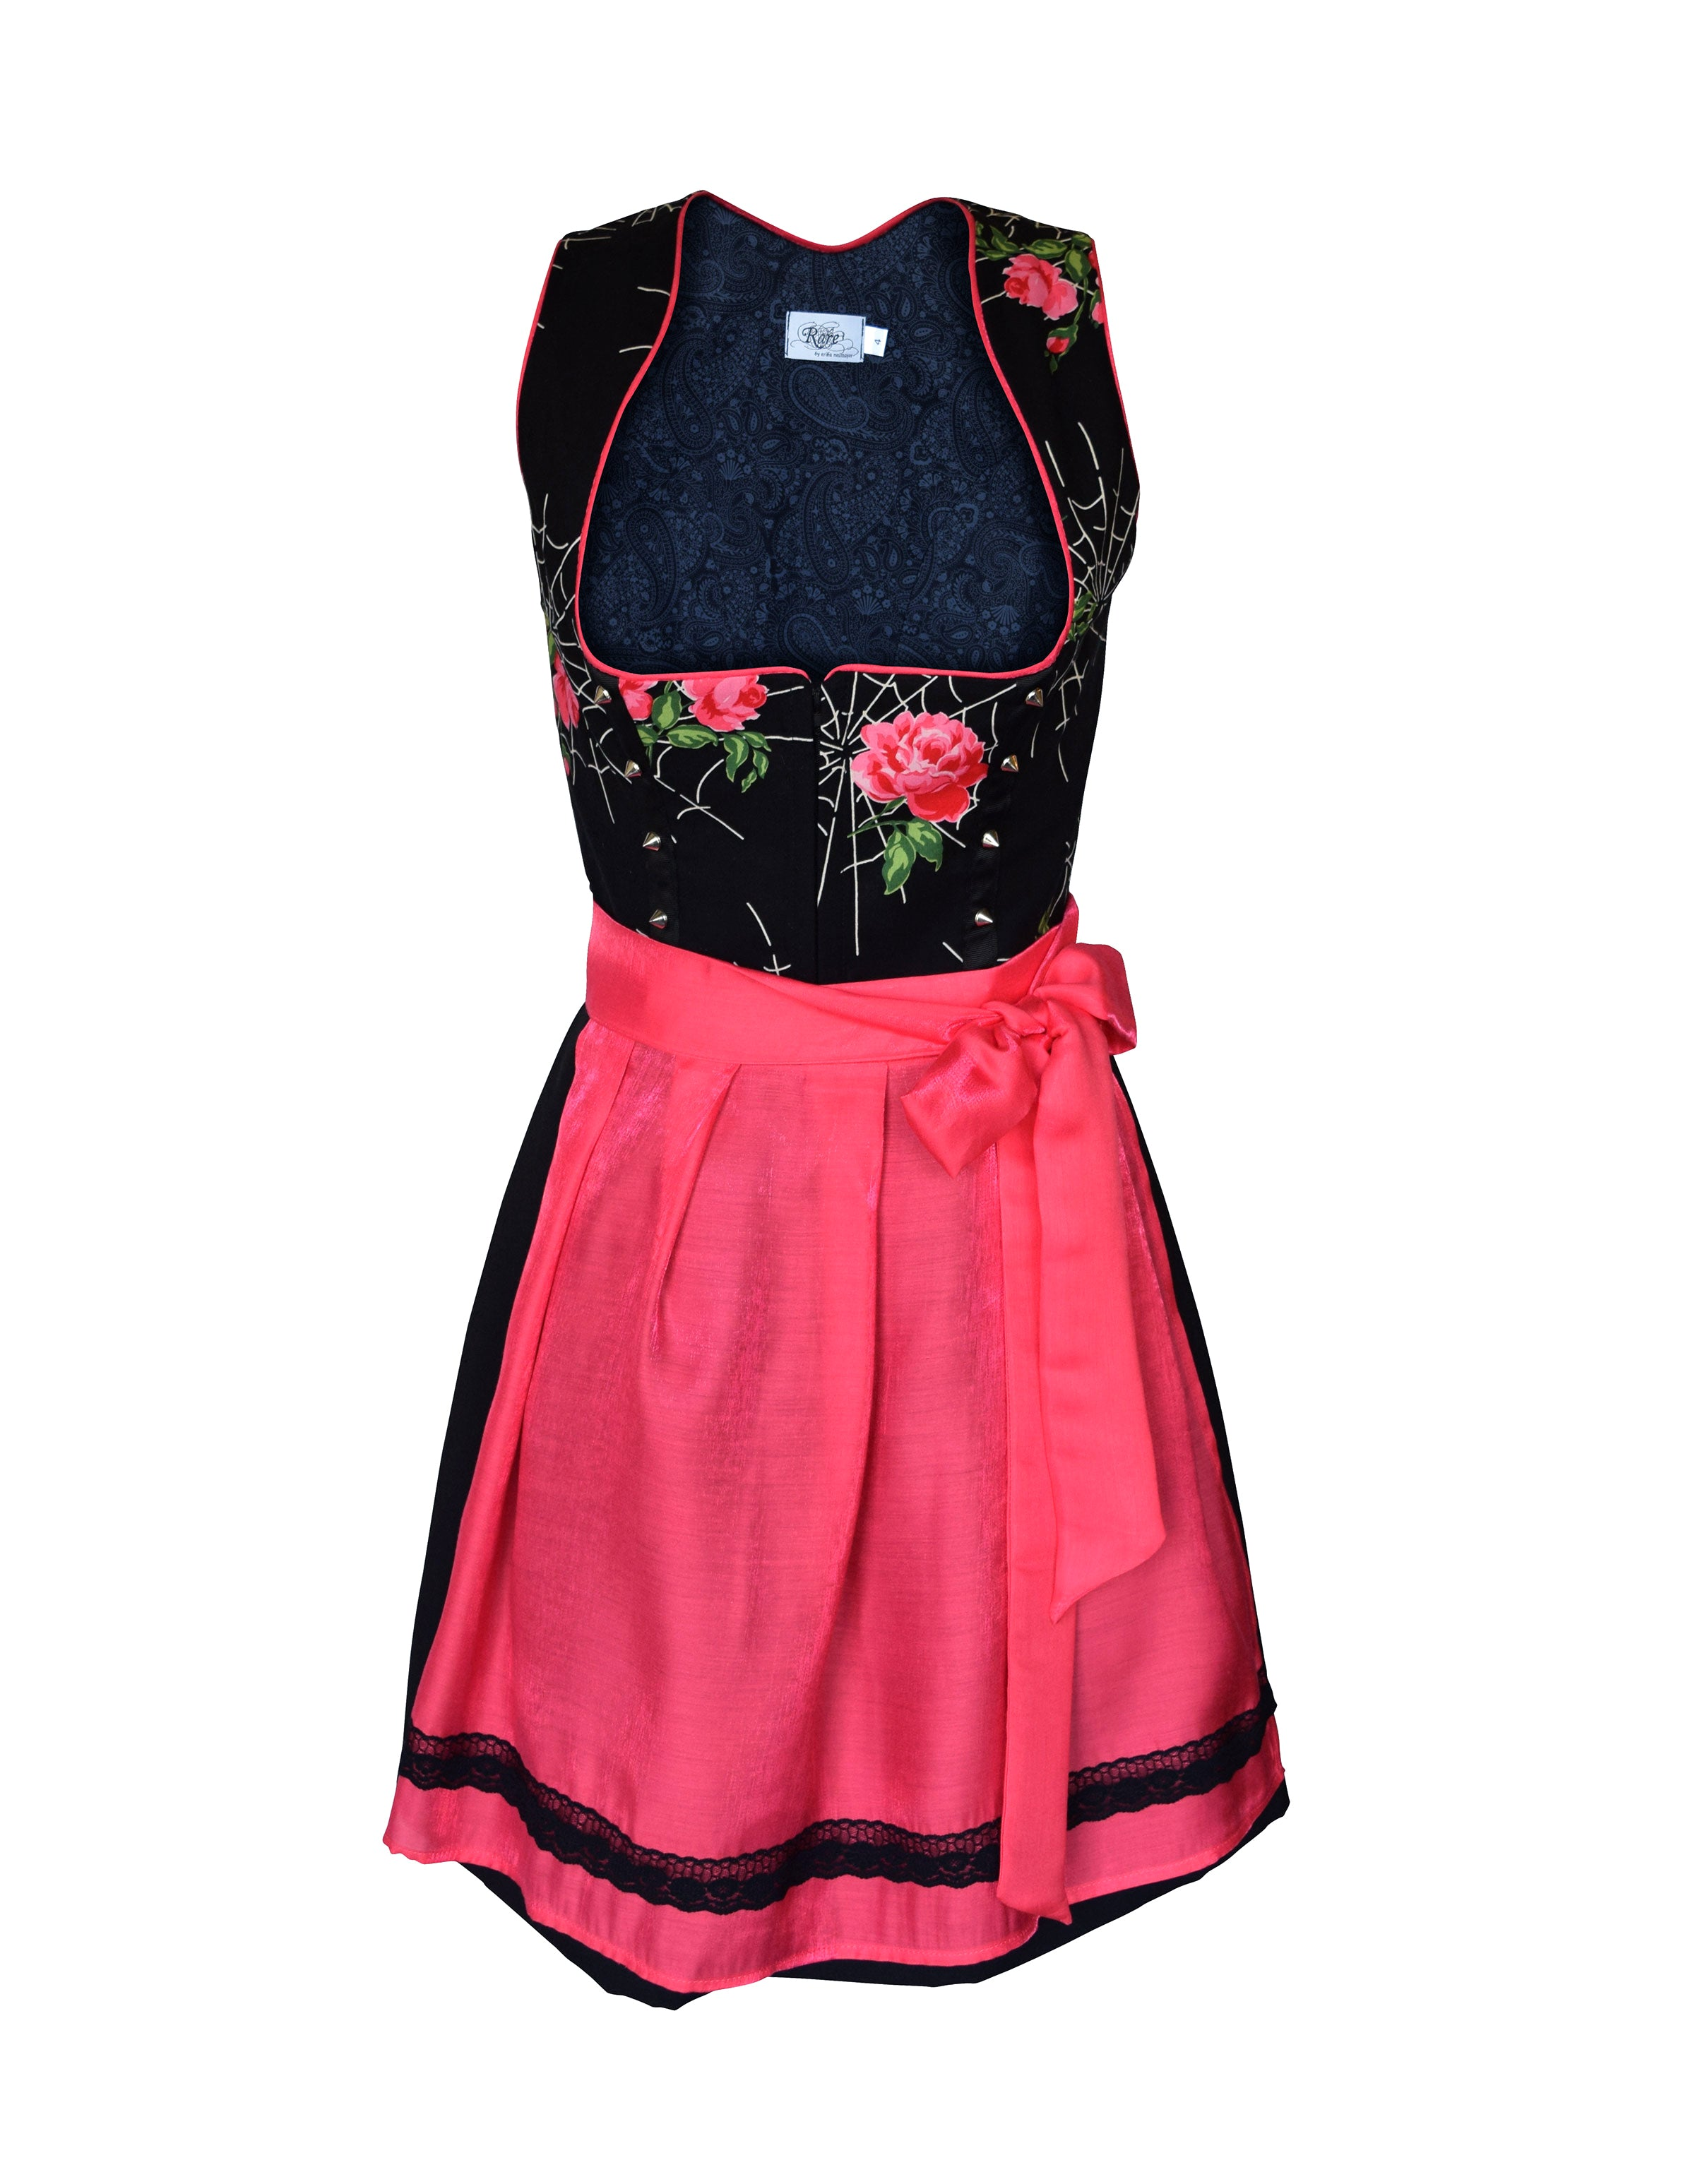 Roses & Spiderwebs Dirndl